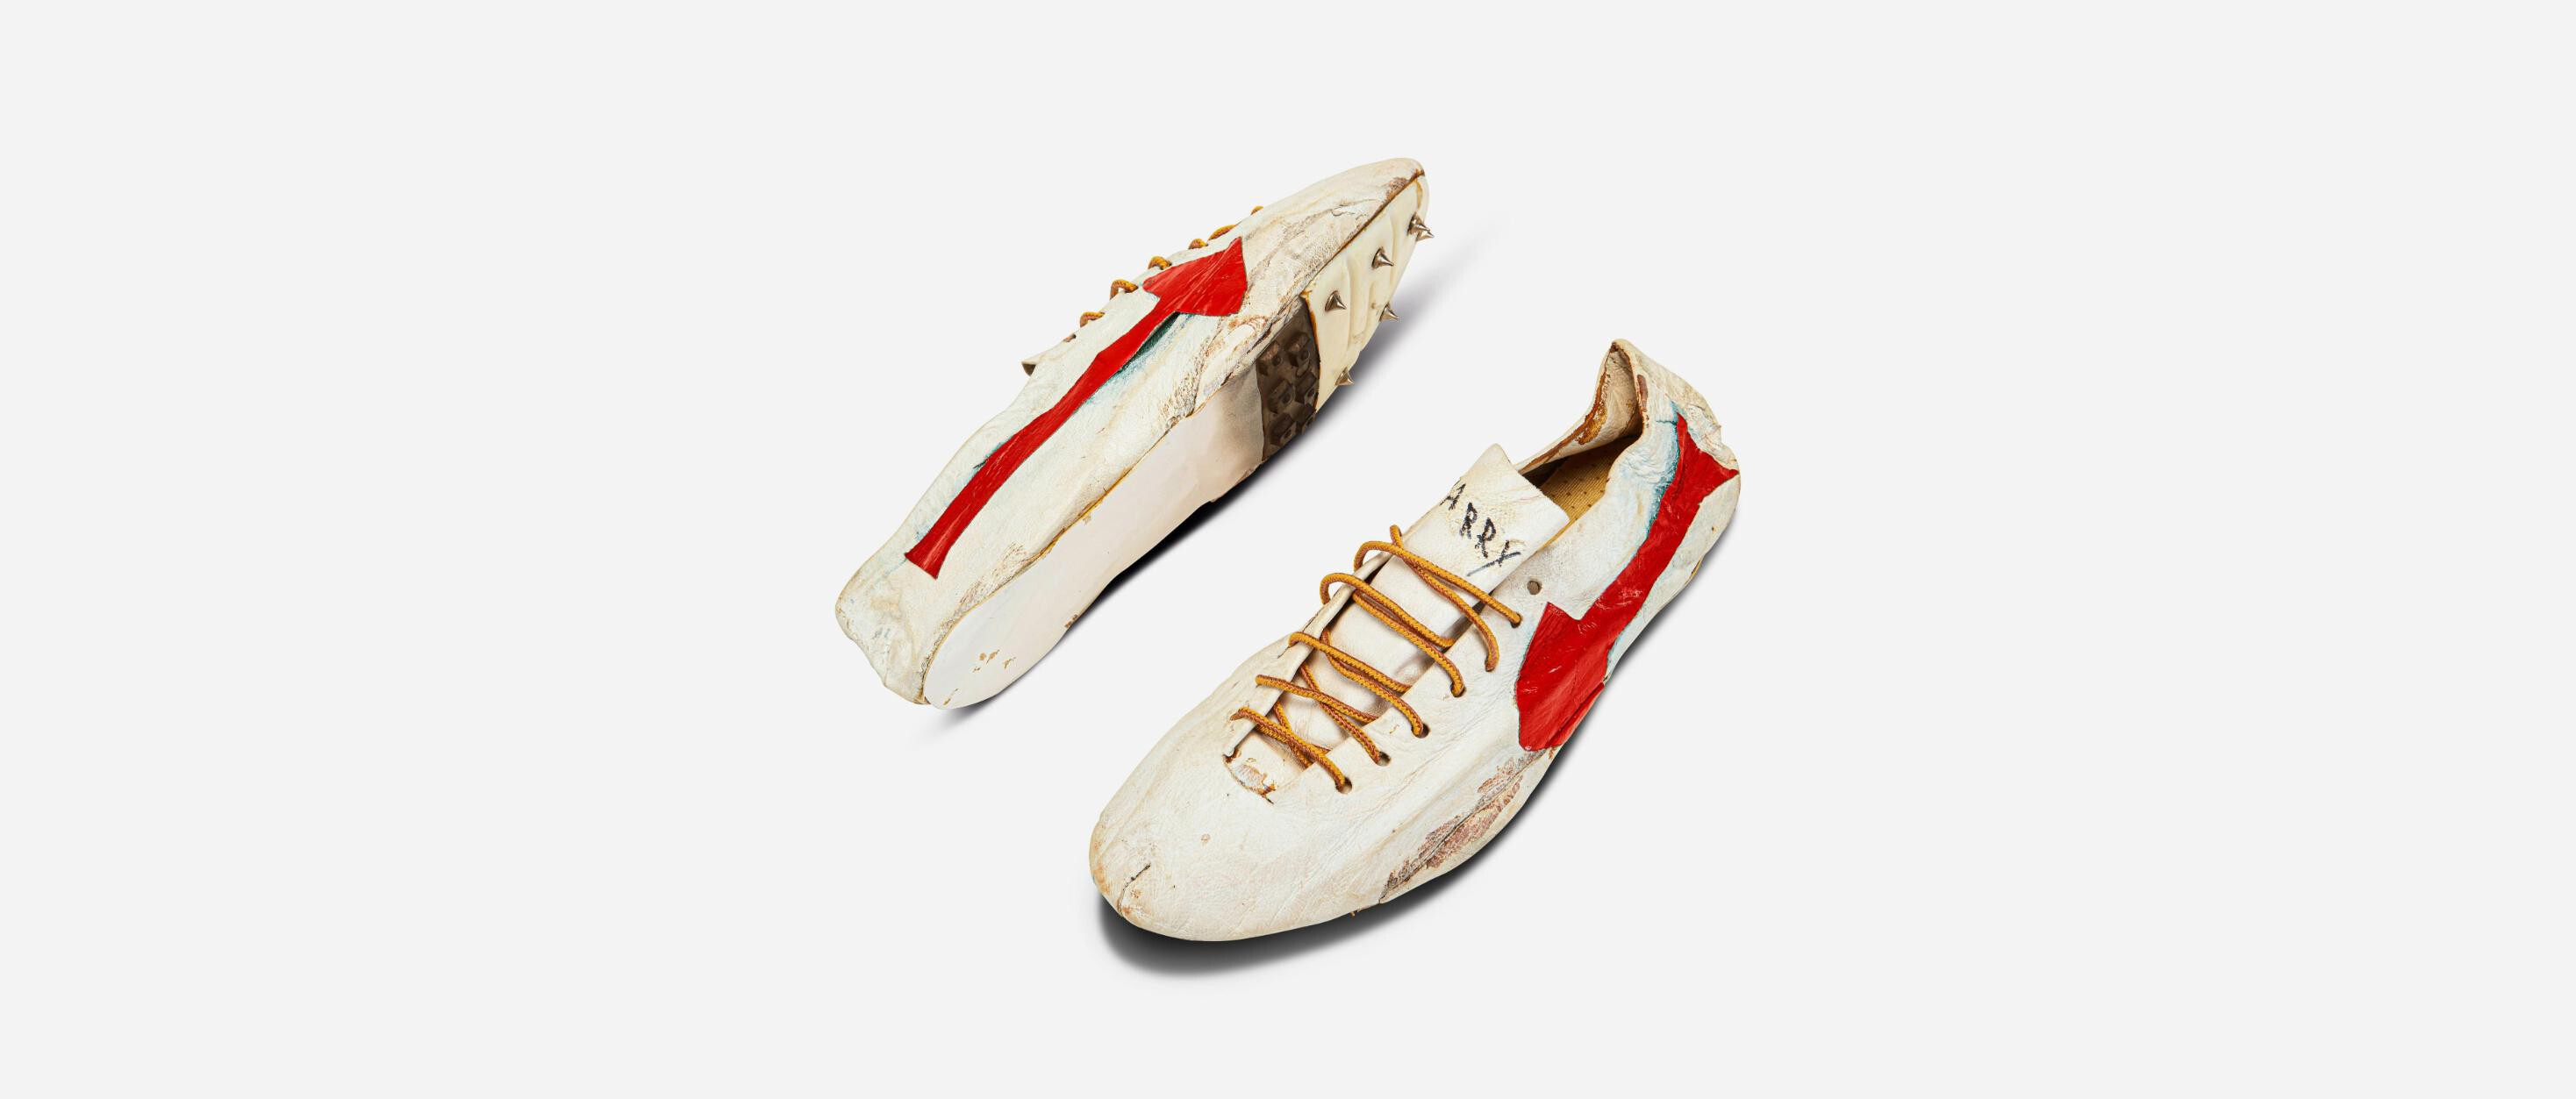 Olympics memorabilia: Rare pair of track spikes handmade by Nike co-founder set to fetch up to $1.2 million at auction